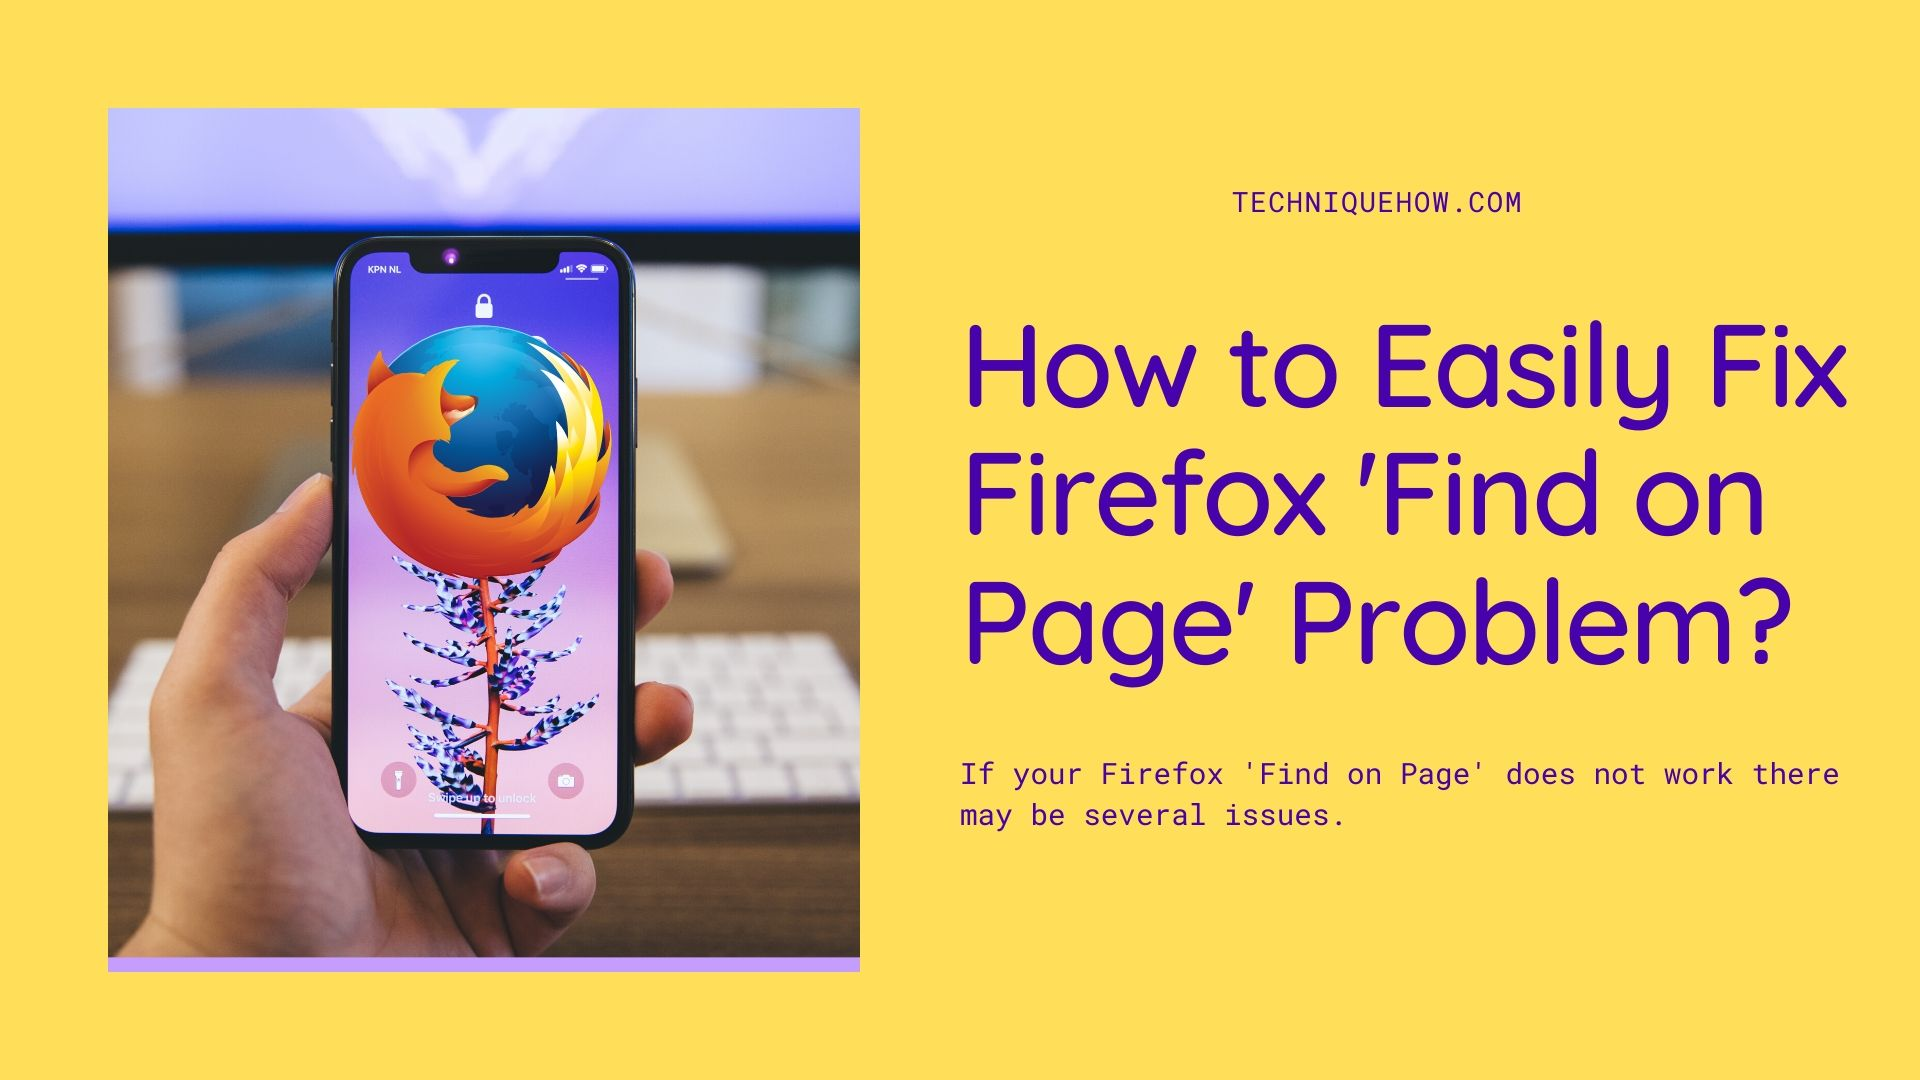 Firefox 'Find on Page' Problem